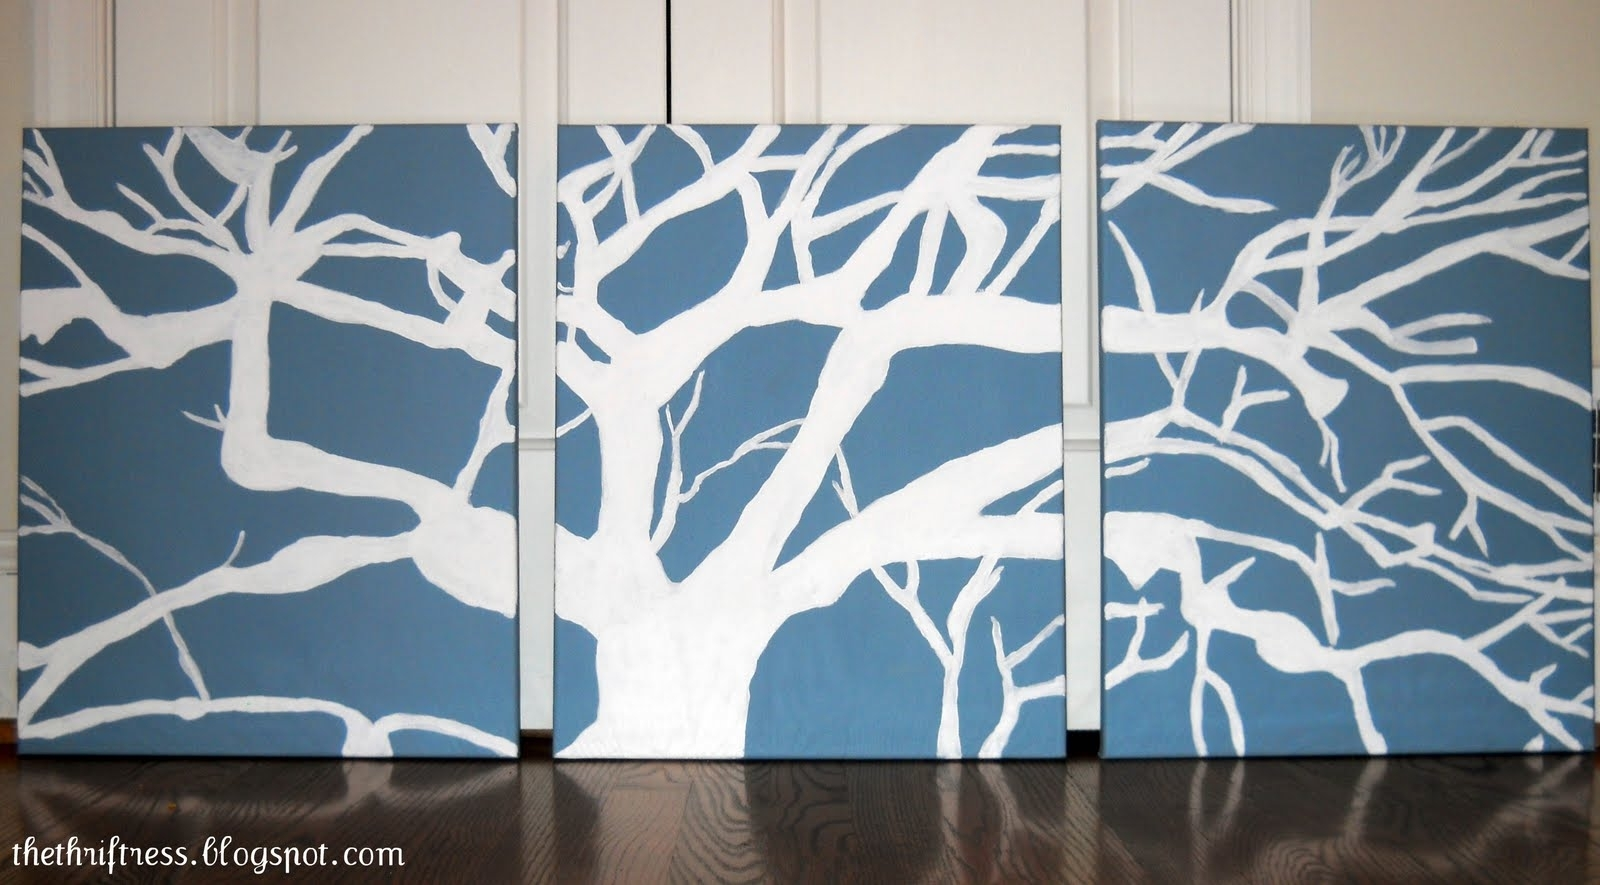 Diy Wall Art Stencils Paint Fabric – Dma Homes | #37854 Within Most Recent Creative Fabric Wall Art (View 8 of 15)